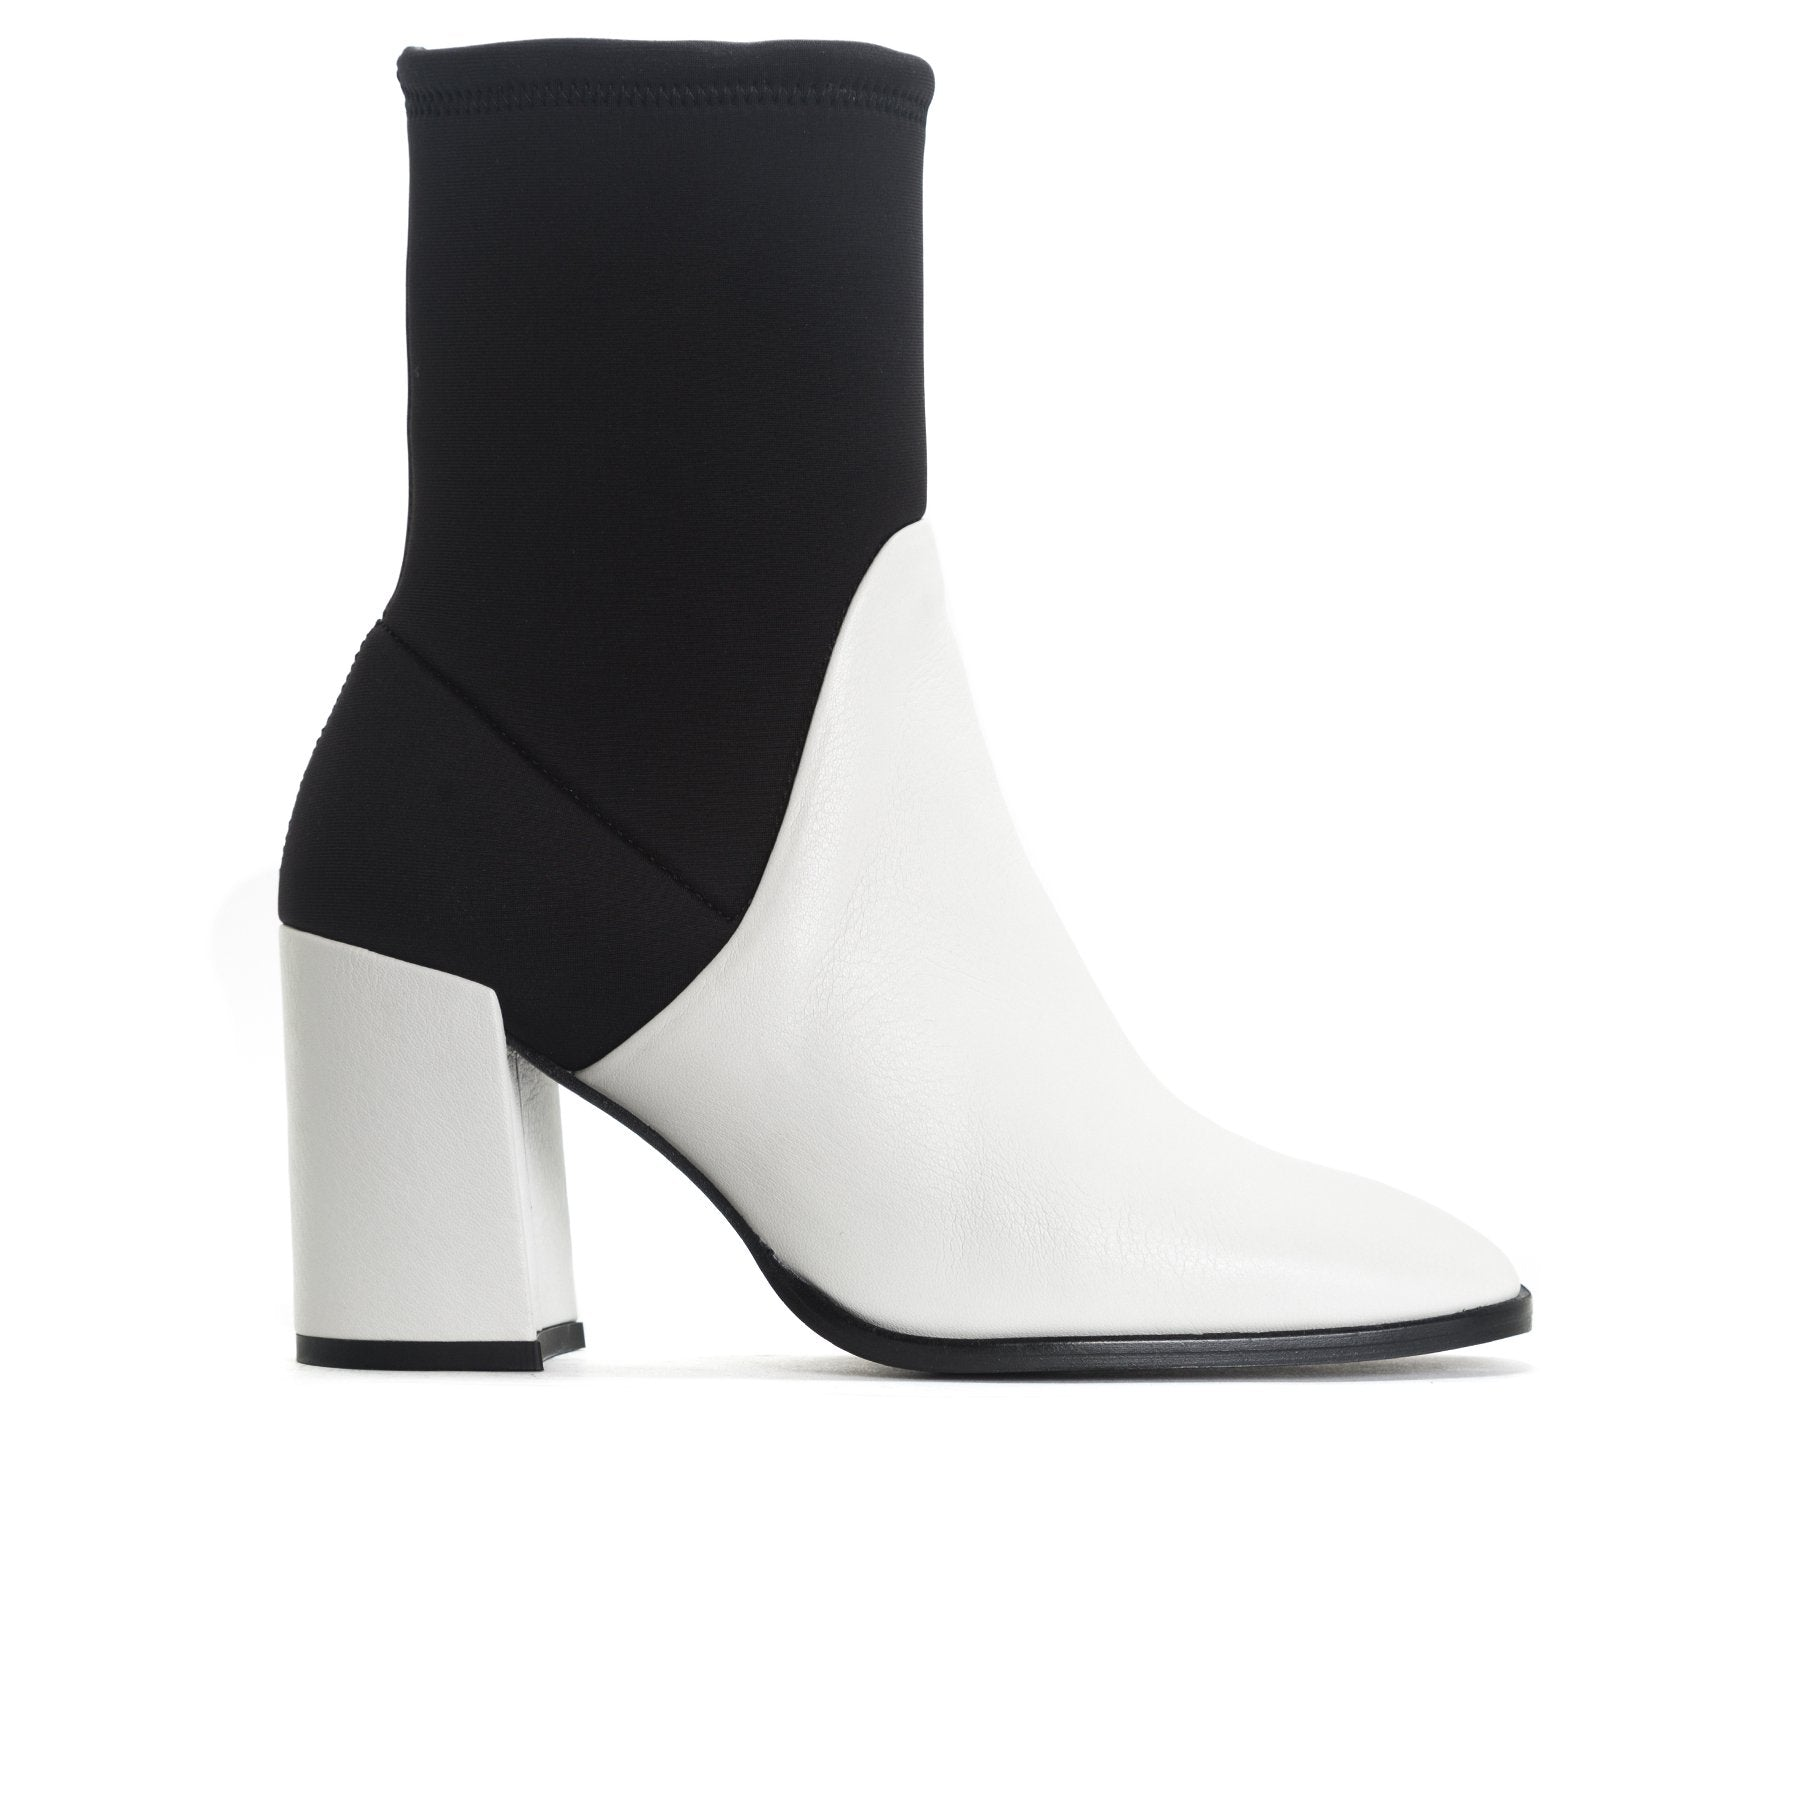 Zadar White Leather/Black Neoprene Ankle Boots